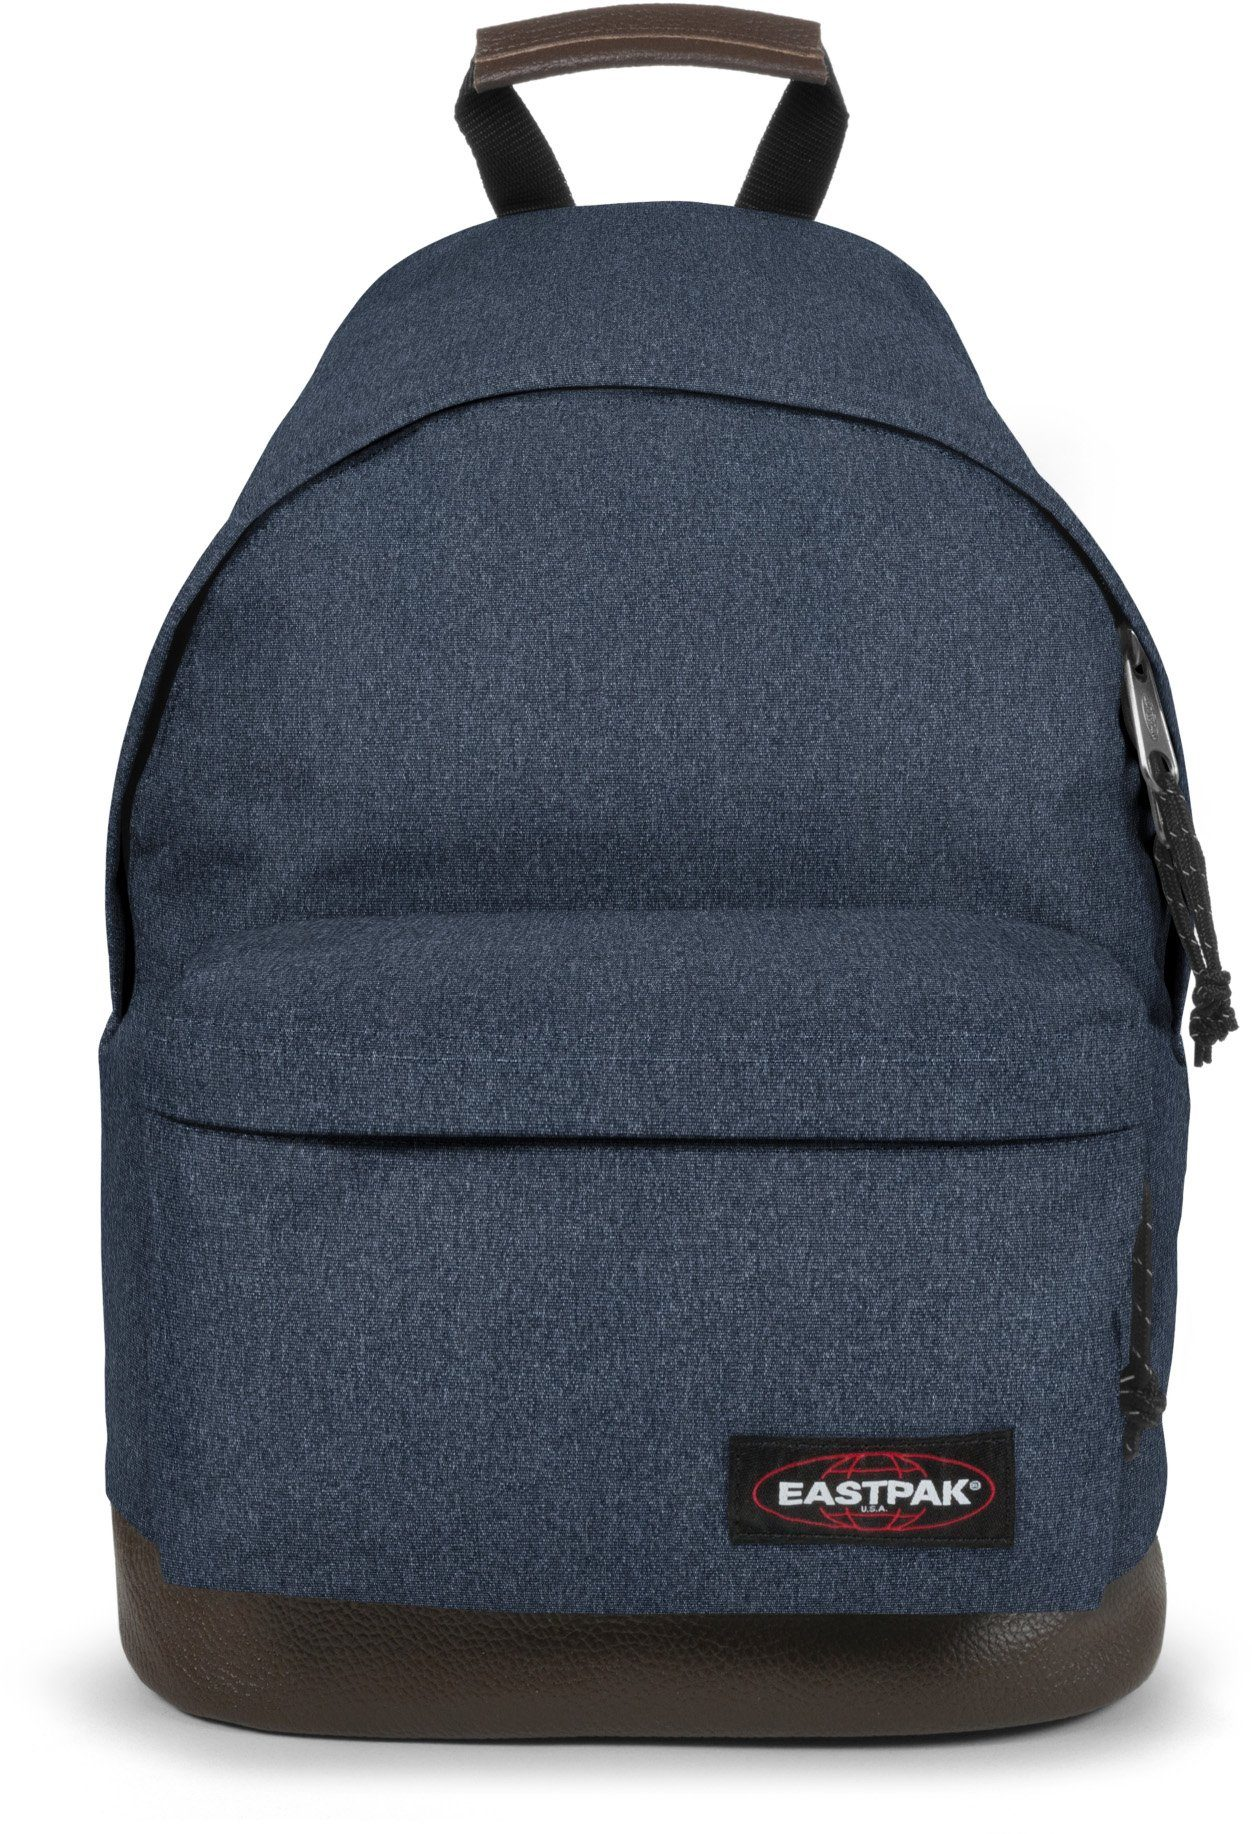 Eastpak Rucksack, »WYOMING double denim«